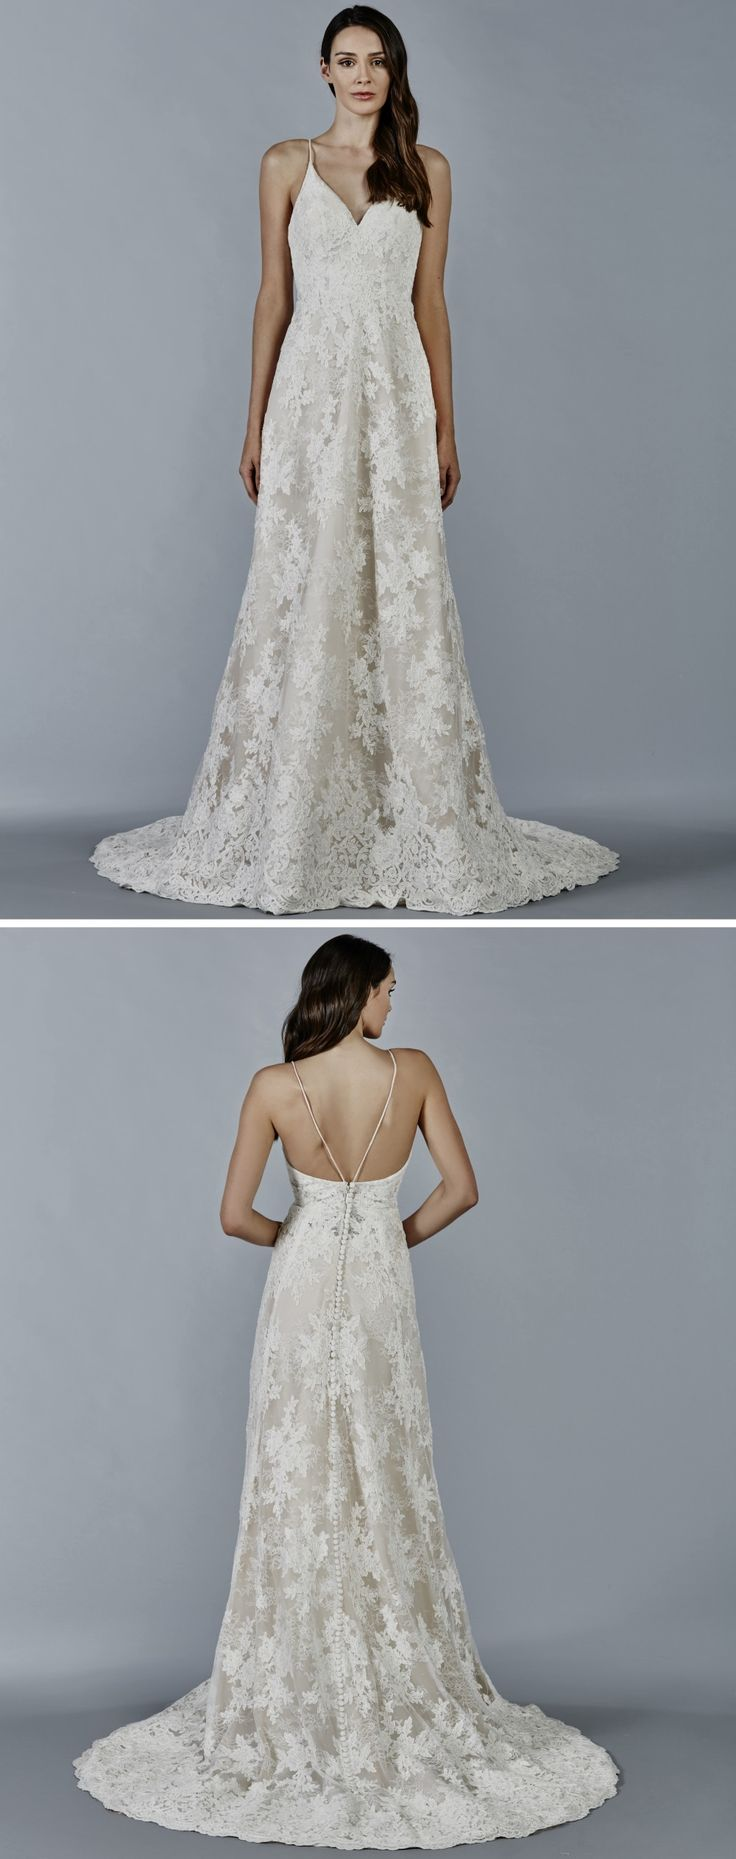 11 best bridesmaid dress images on Pinterest | Bridesmaid, Party ...